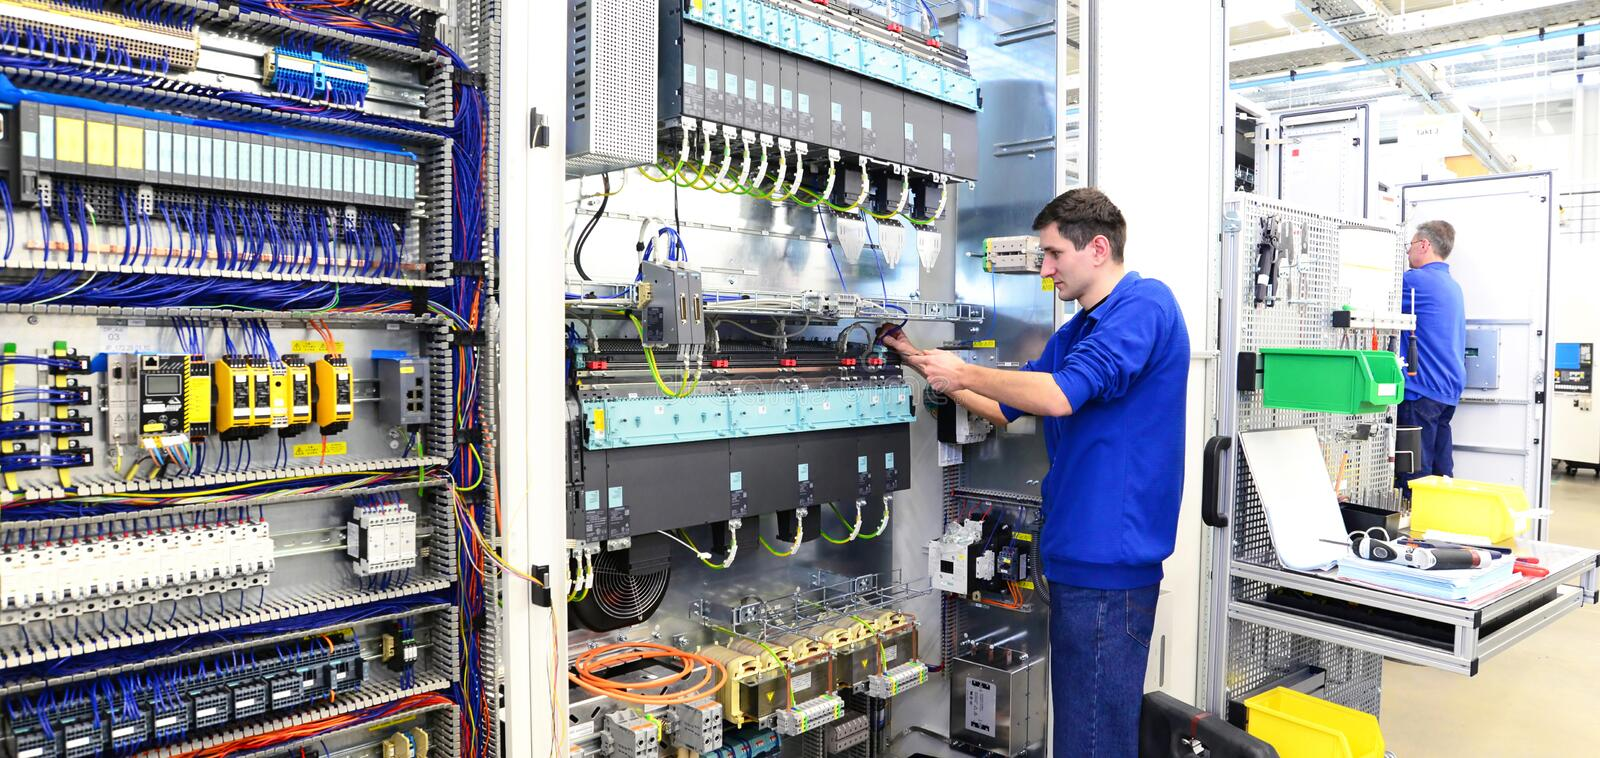 Operator assembles machine in a factory - production of switch c. Abinets for industrial plant - panorama photo stock image